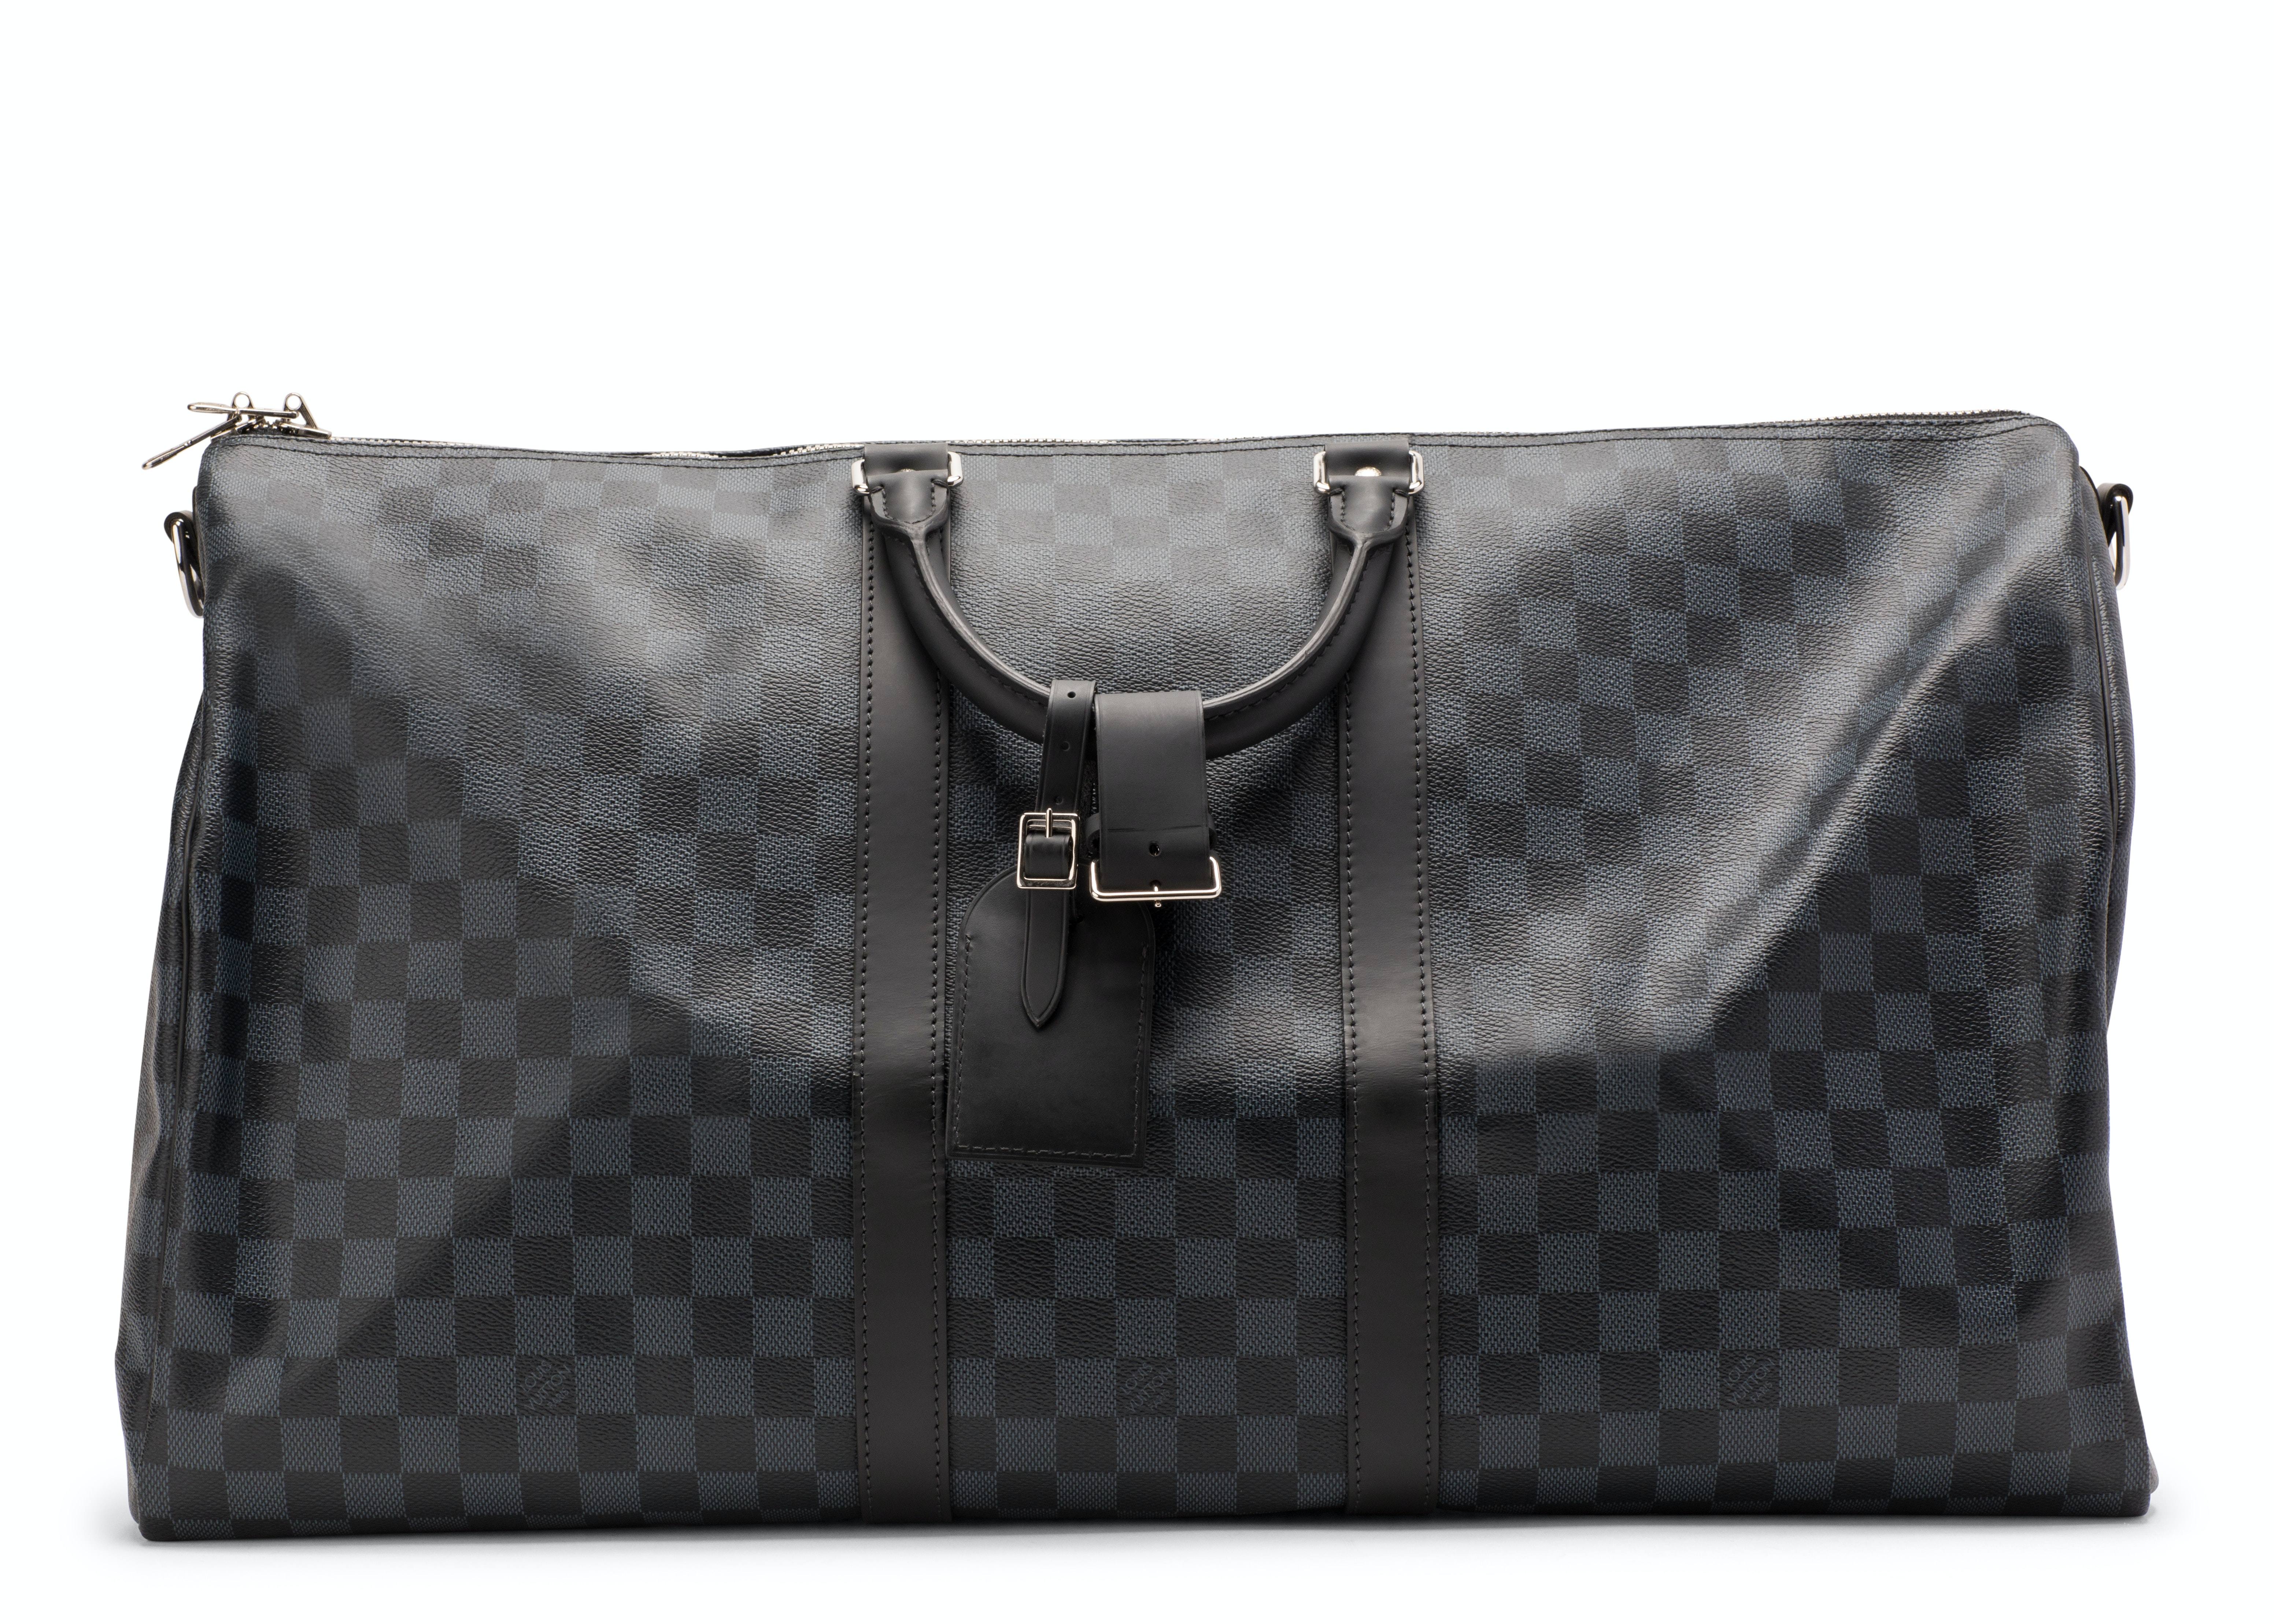 Louis Vuitton Keepall Bandouliere Damier (With Accessories) 55 Cobalt